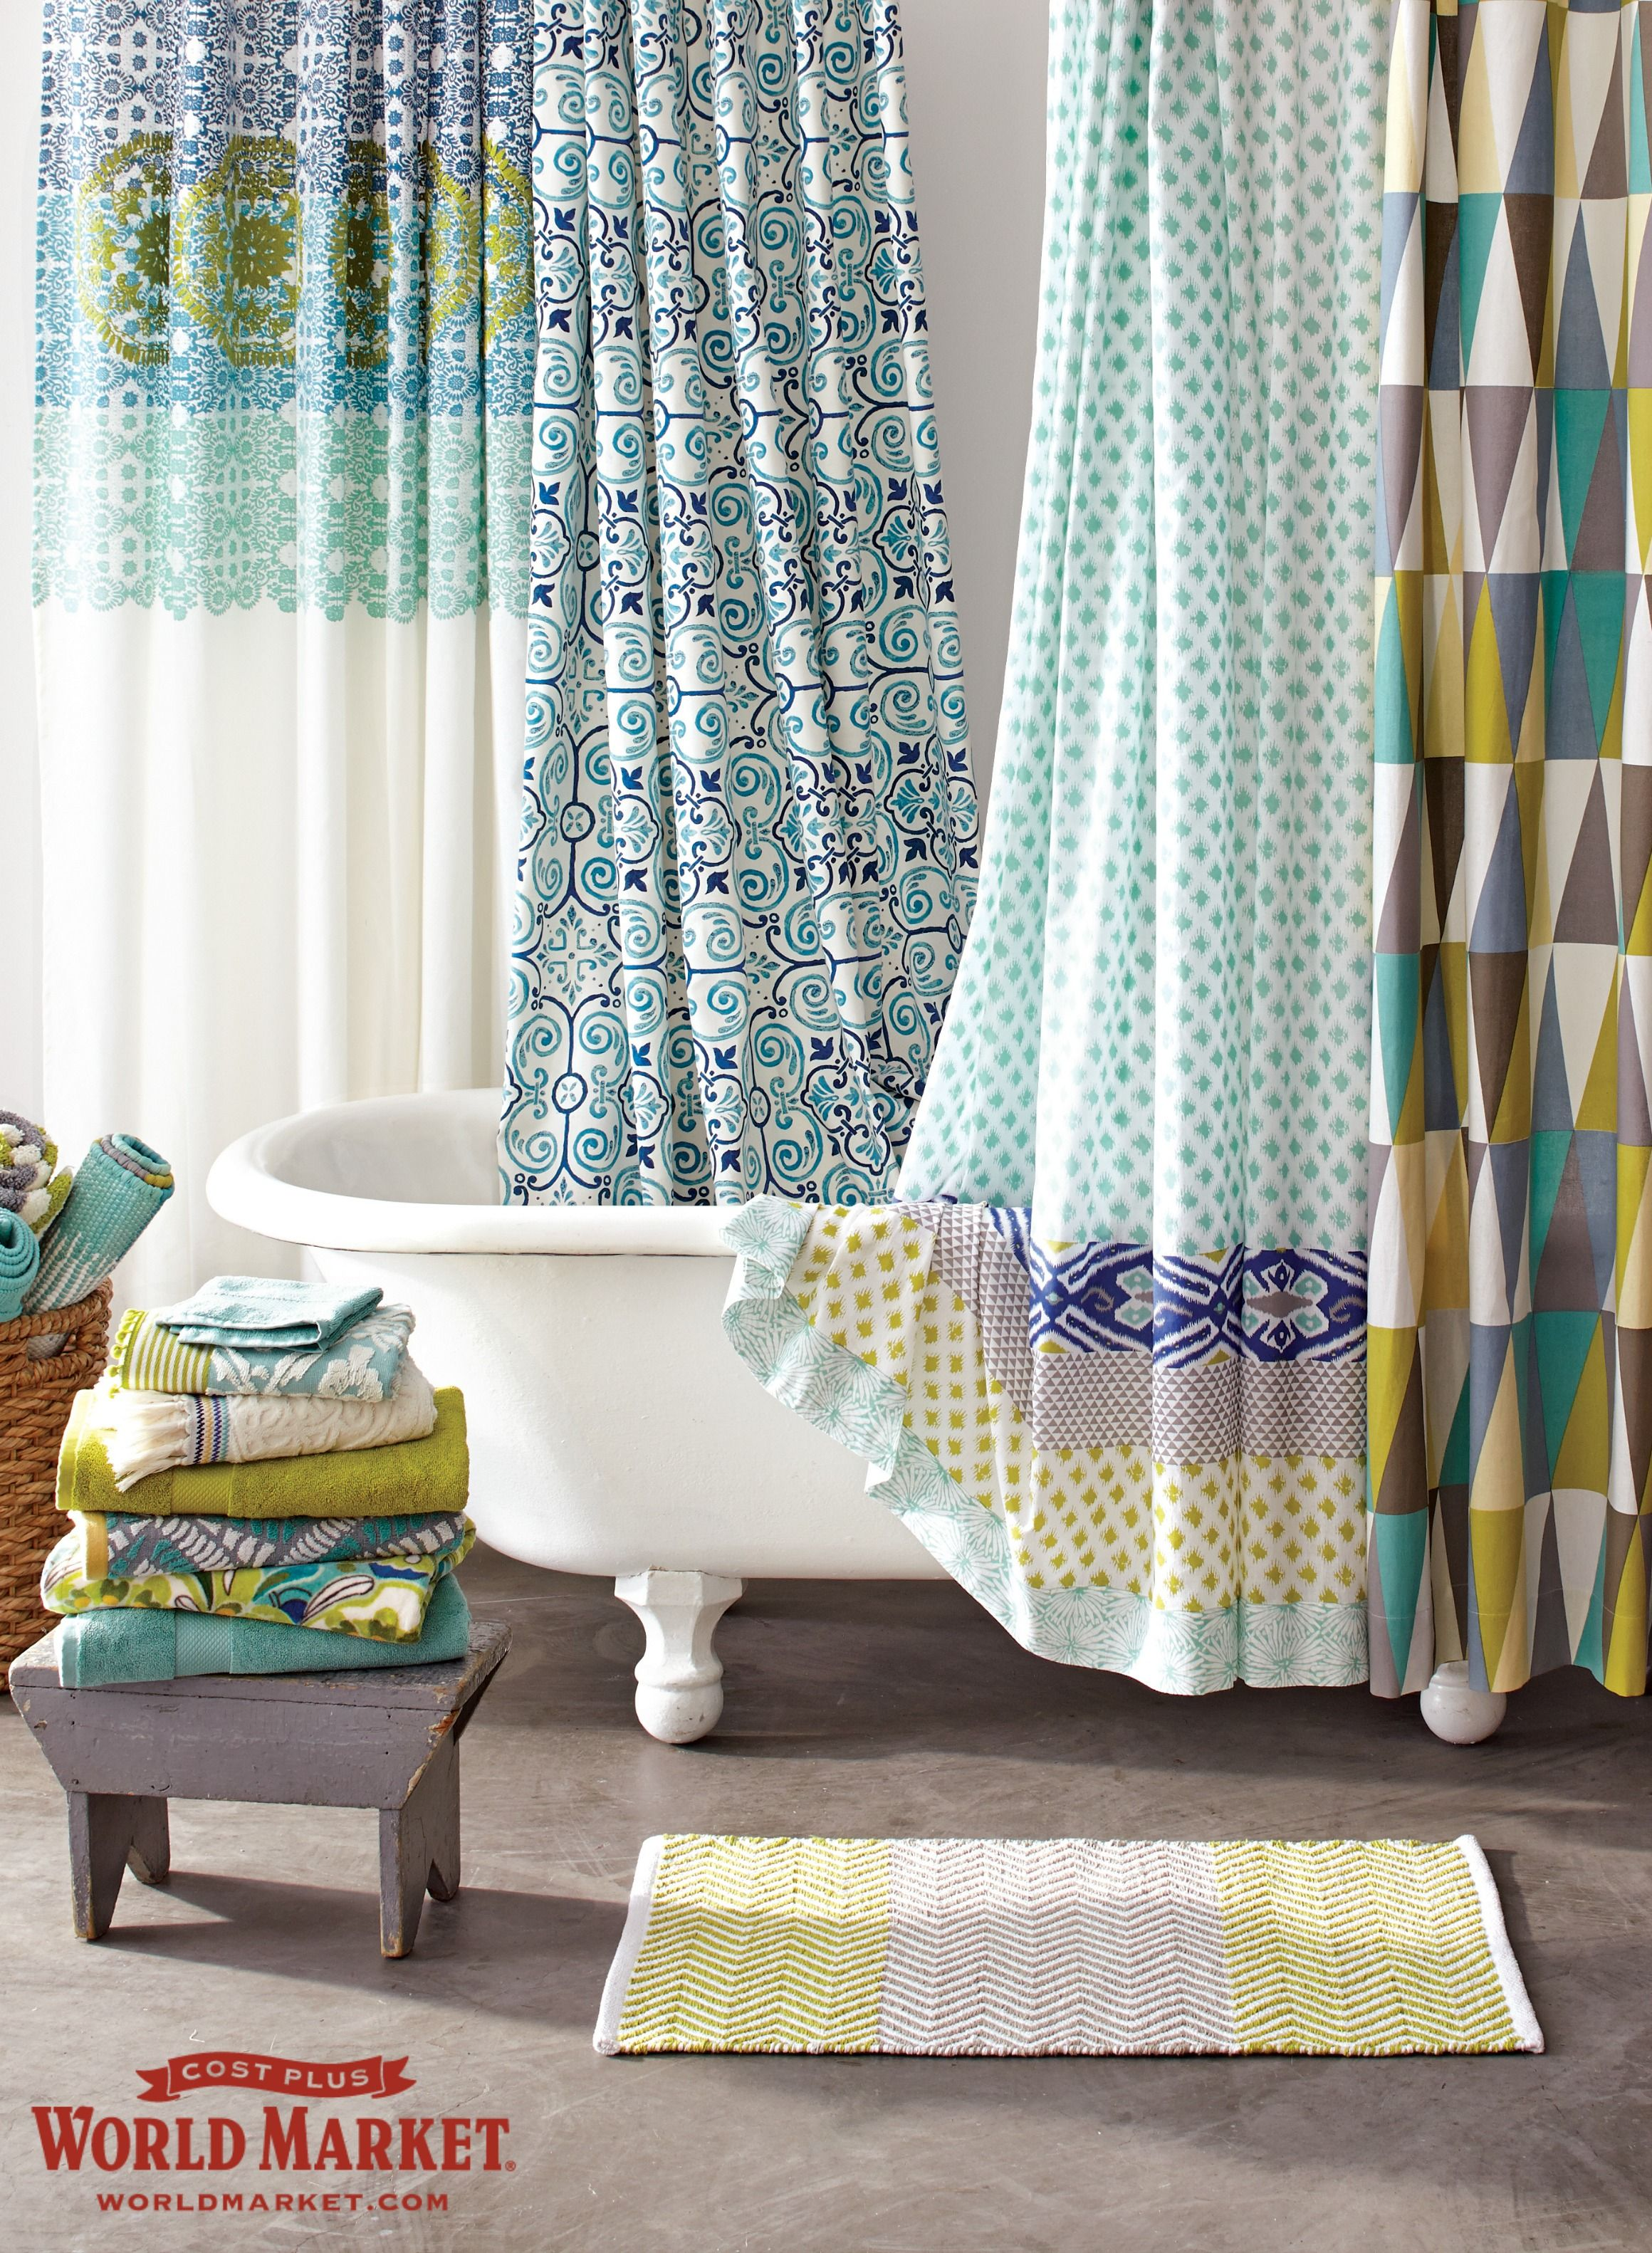 Our Assortment Of Unique Shower Curtains And Stylish Curtain